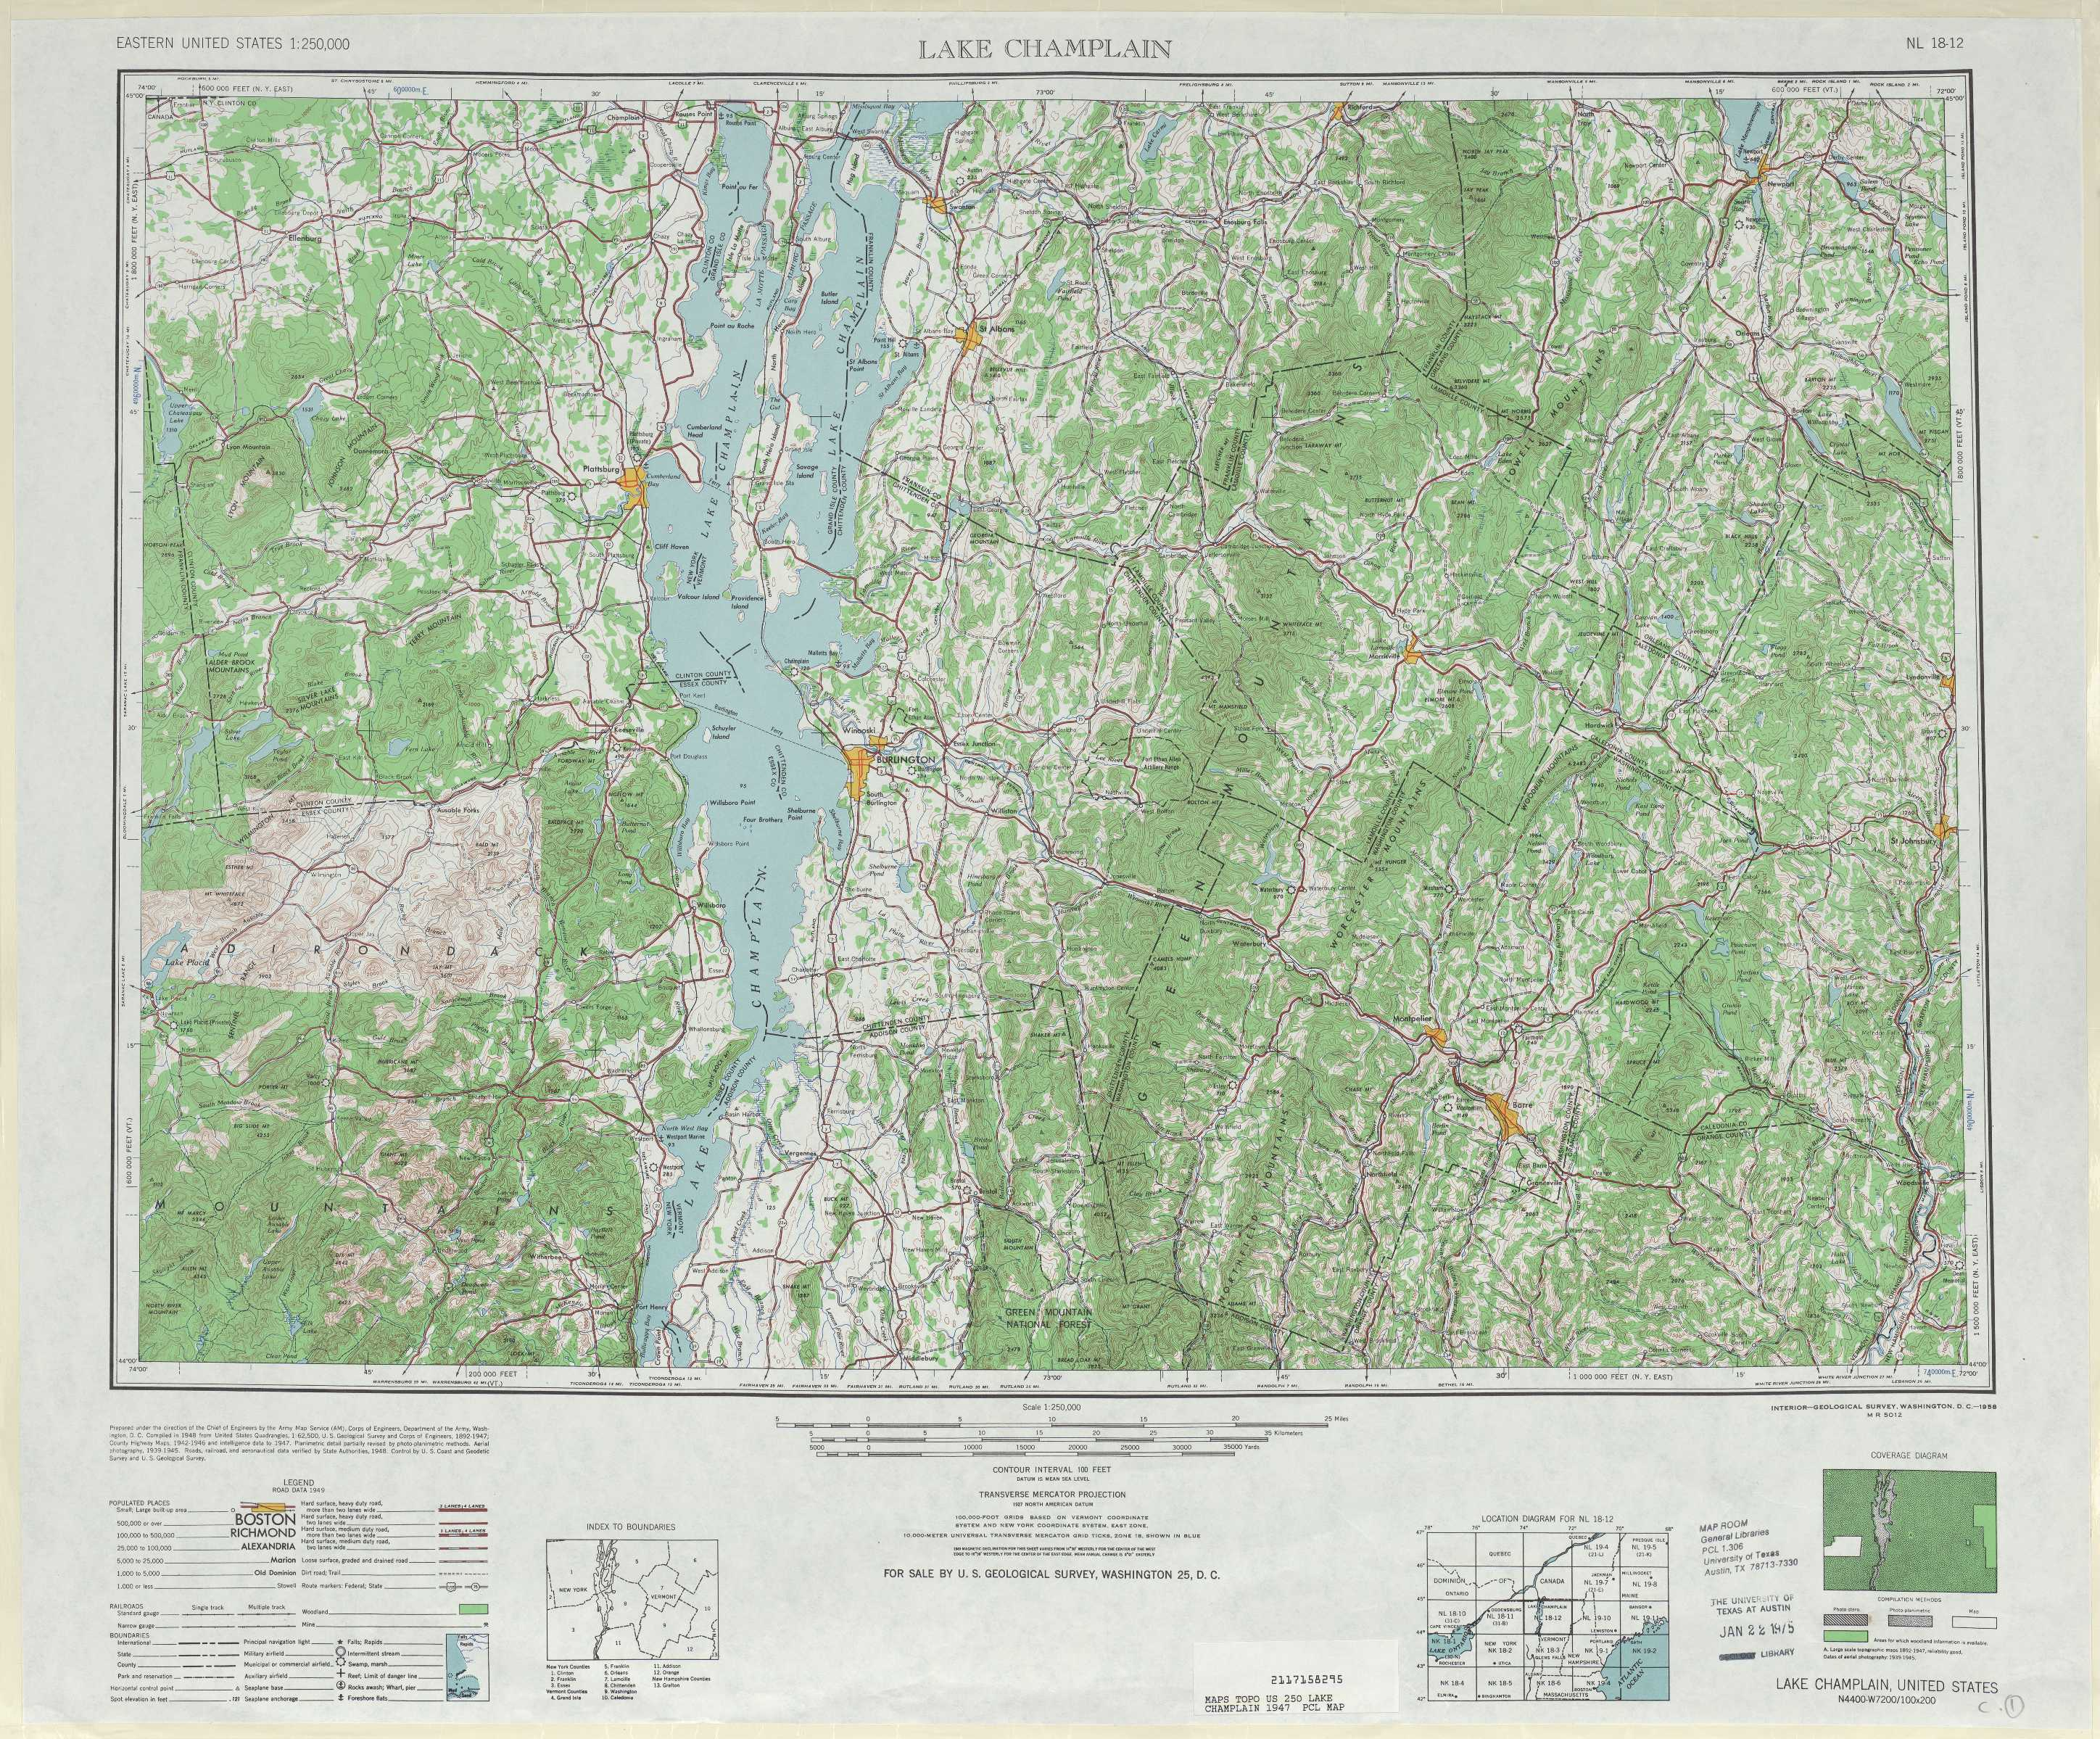 Lake Champlain topographic maps VT NY NH USGS Topo Quad 44072a1 at 1 250